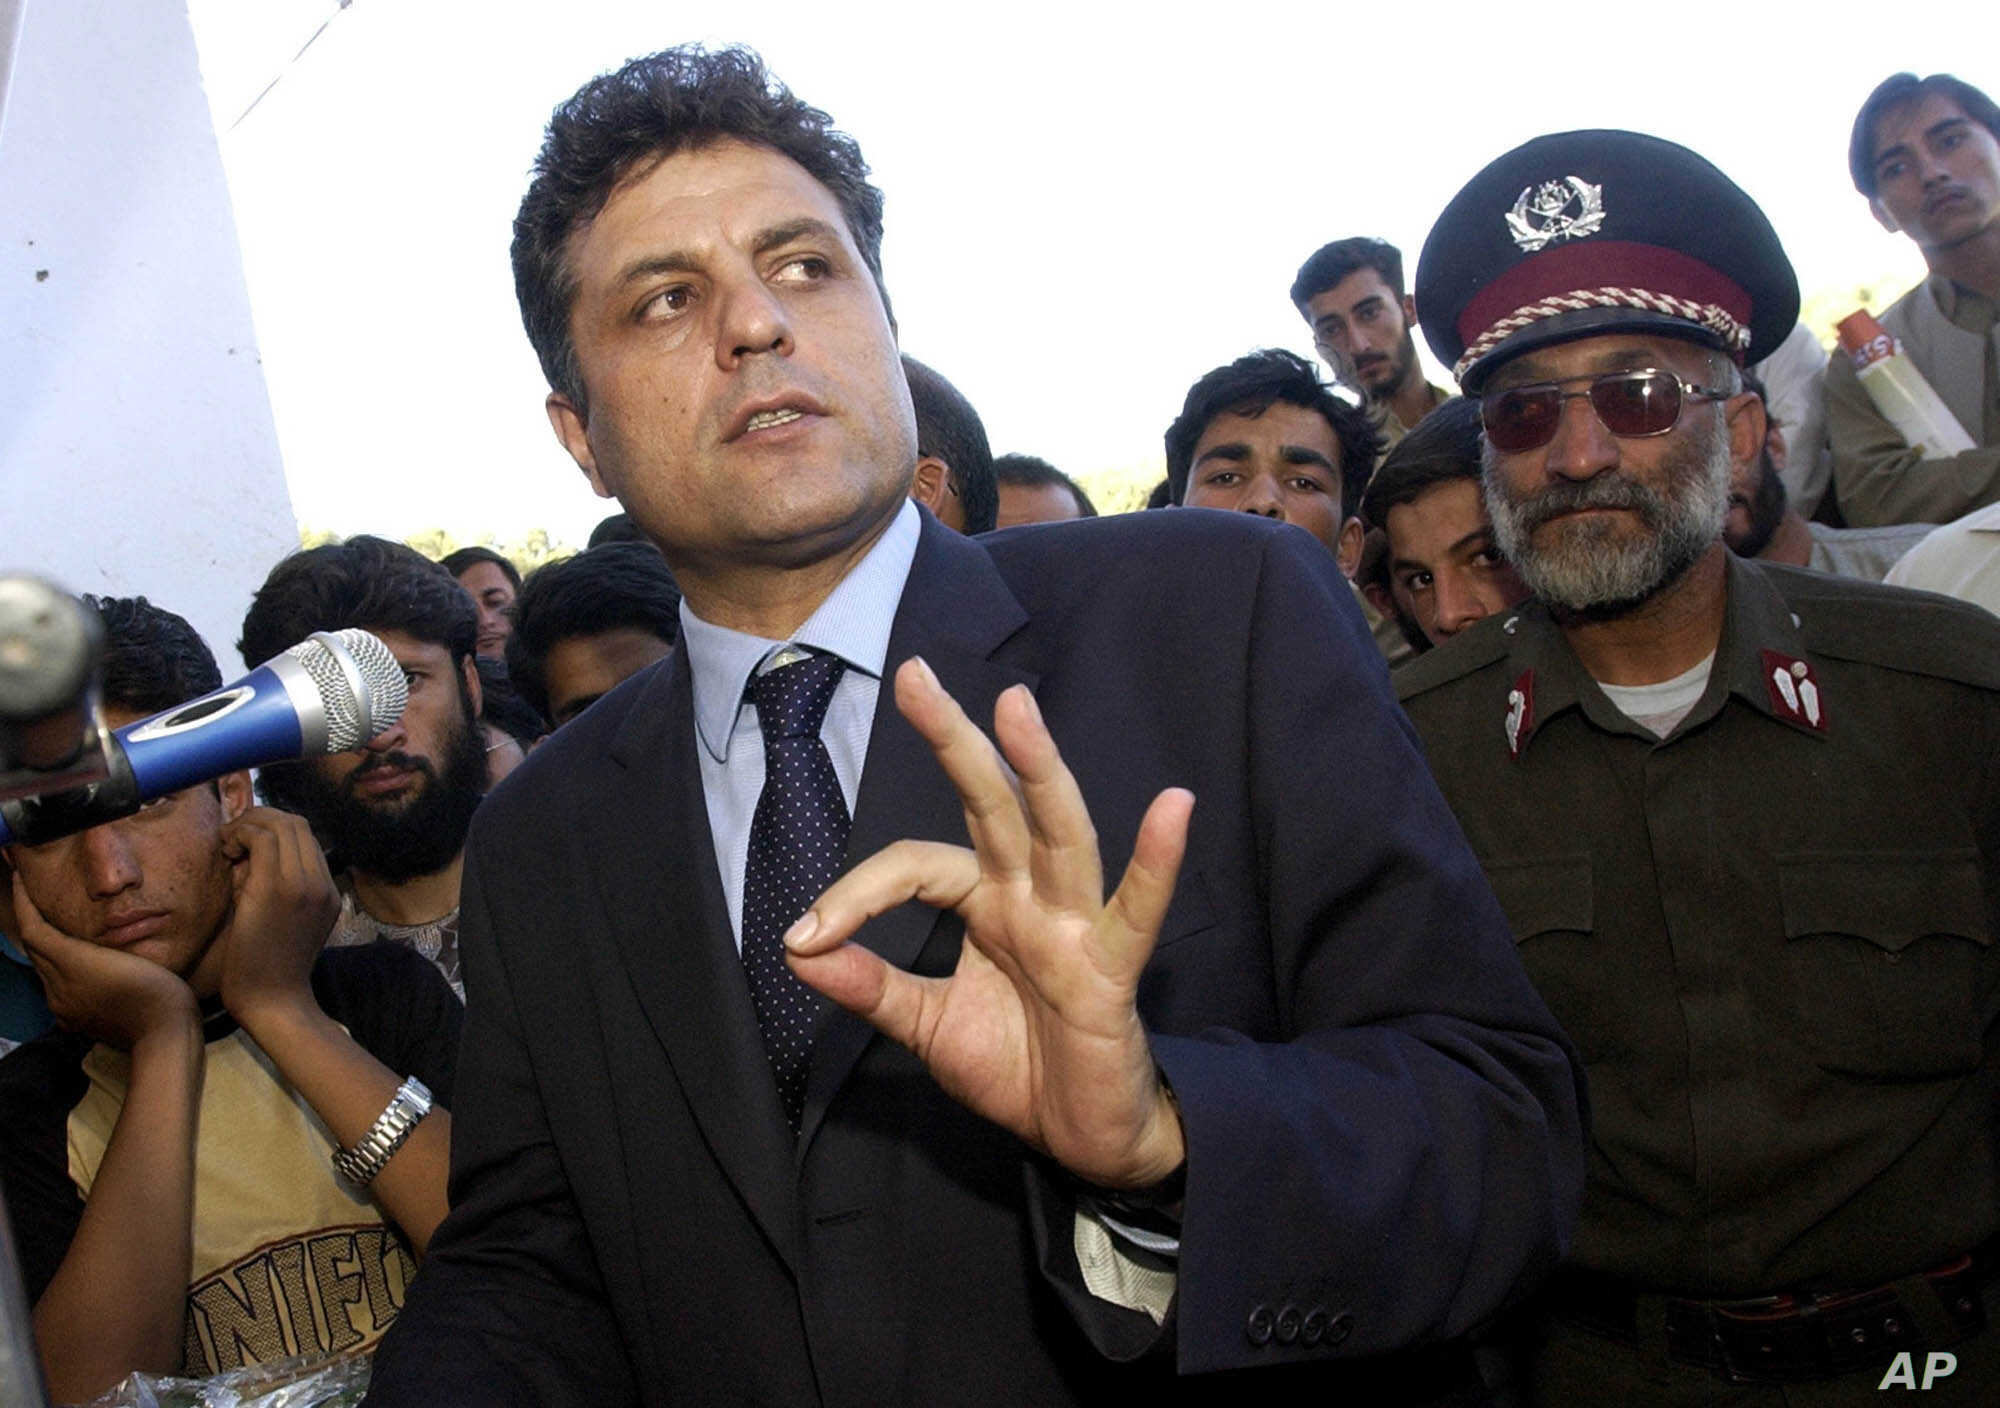 FILE - Presidential candidate Abdul Latif Pedram gestures as he speaks to supporters during a campaign stop at a stadium of western city in Herat, Afghanistan, Oct. 3, 2004.